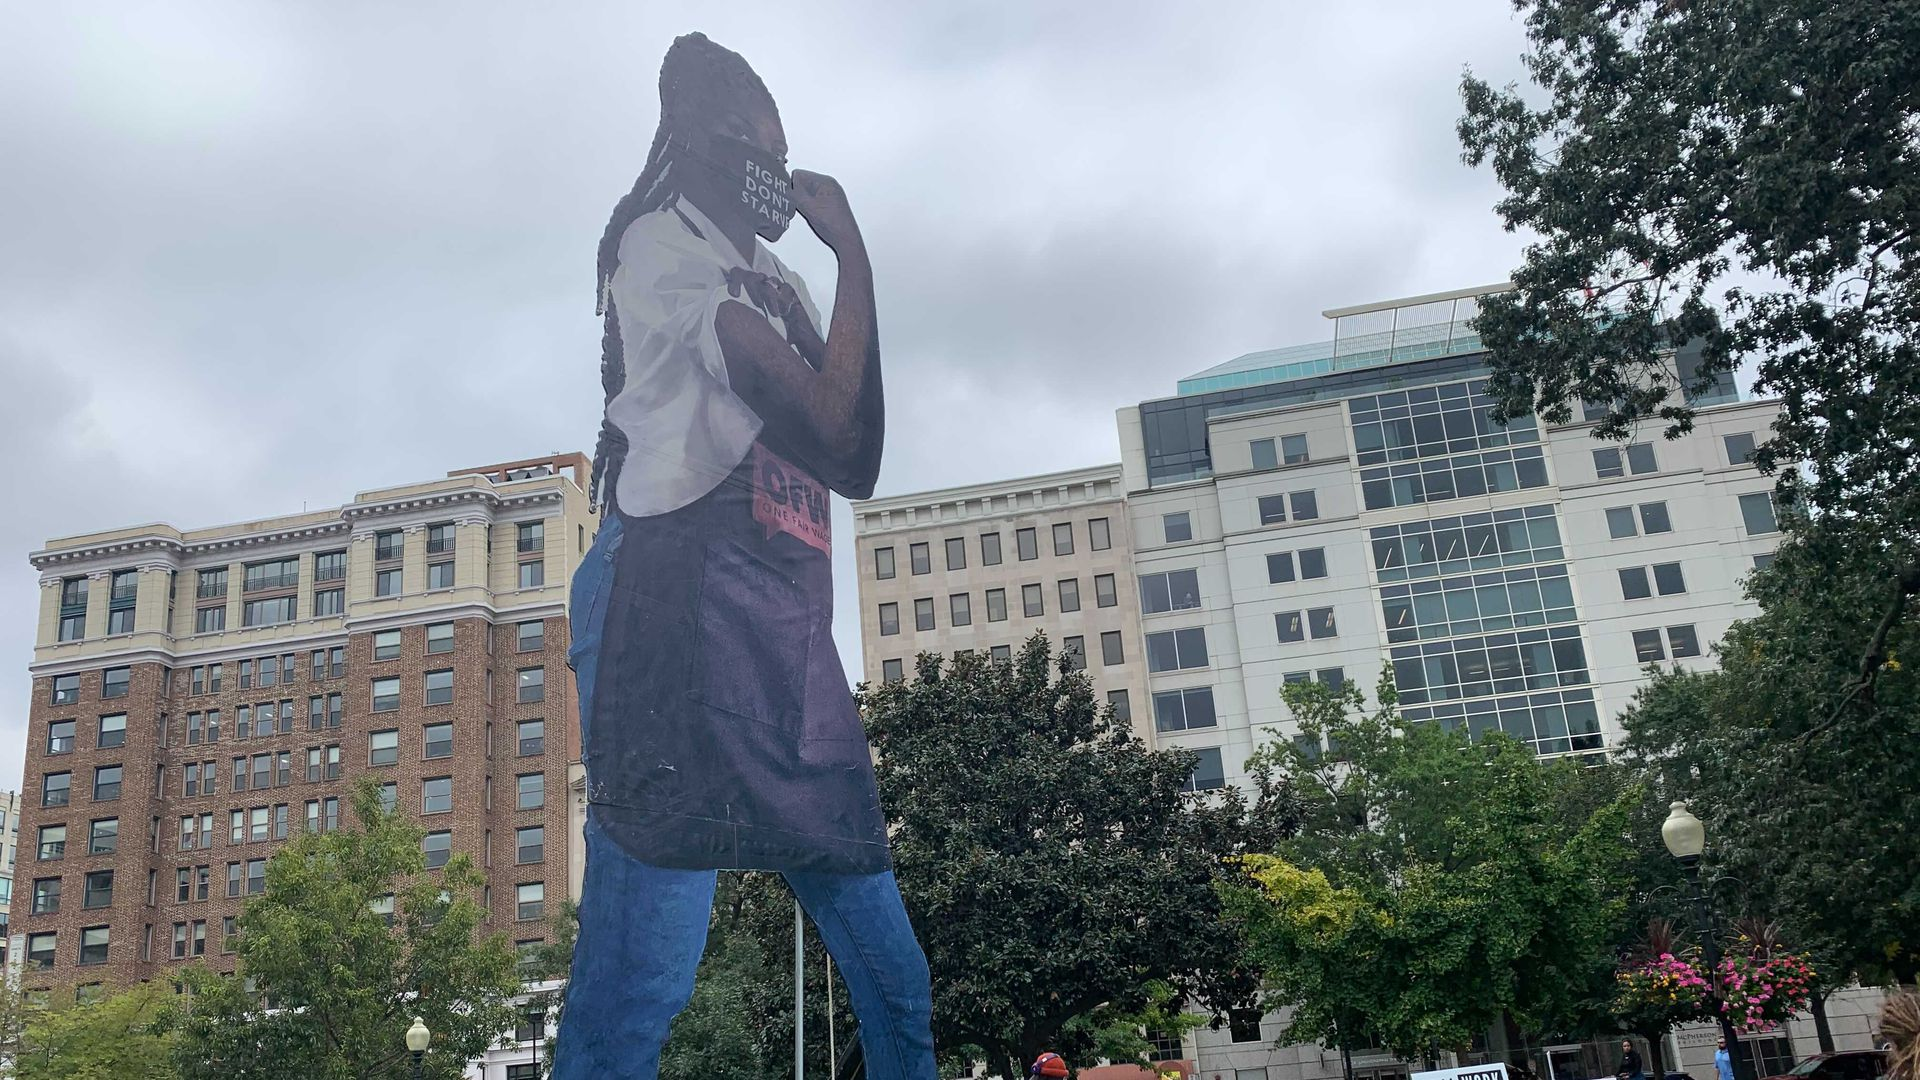 Tipped minimum wage rally in D.C.